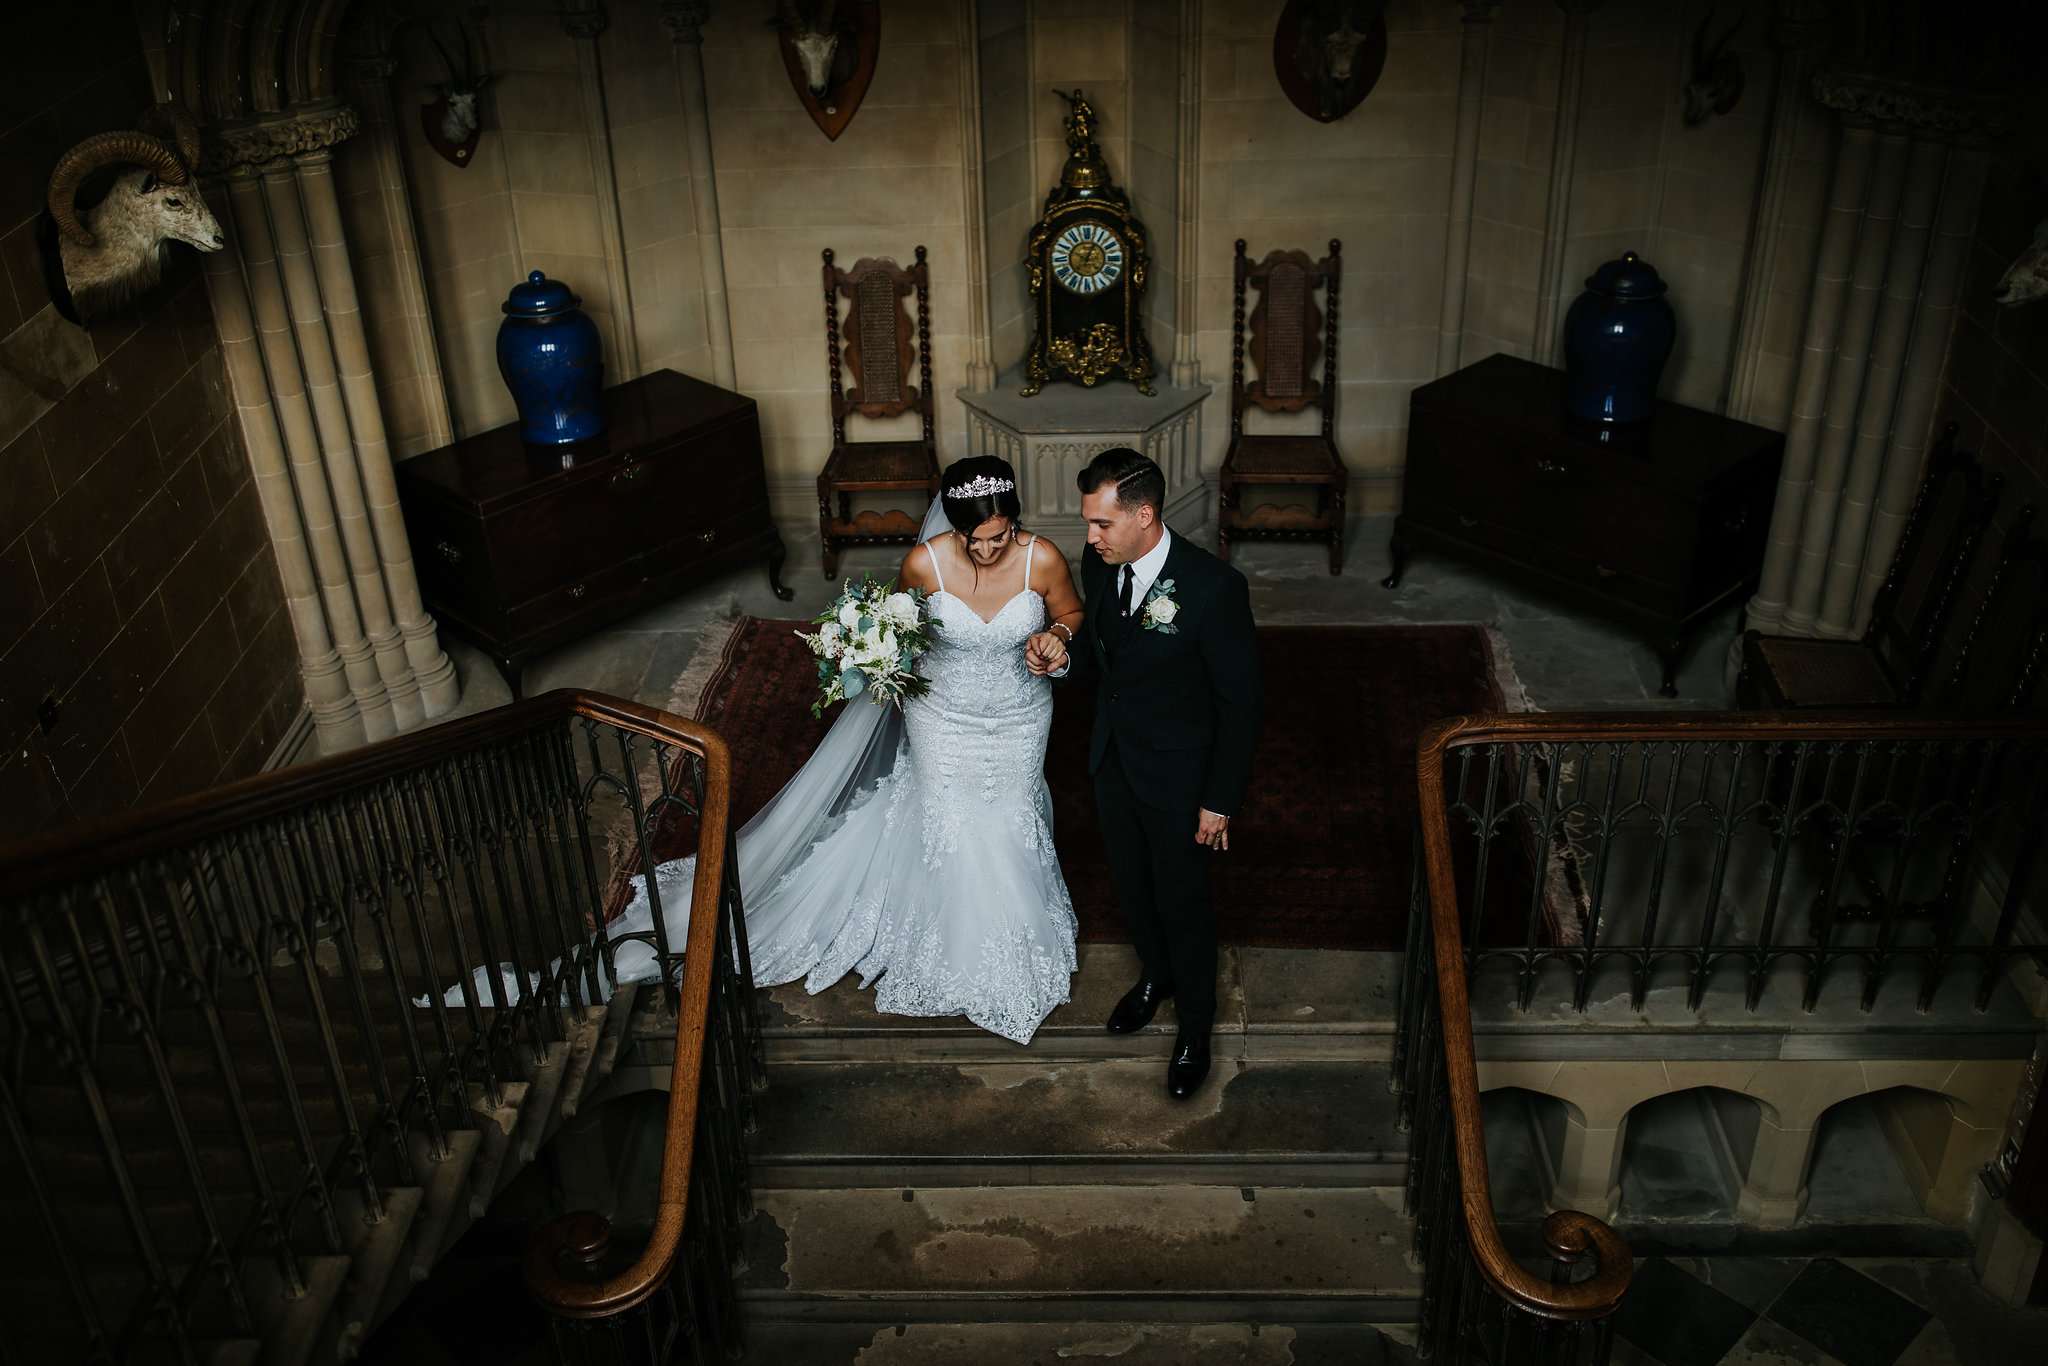 Duns_Castle_wedding_photographer_ross_alexander_photography (57).jpg